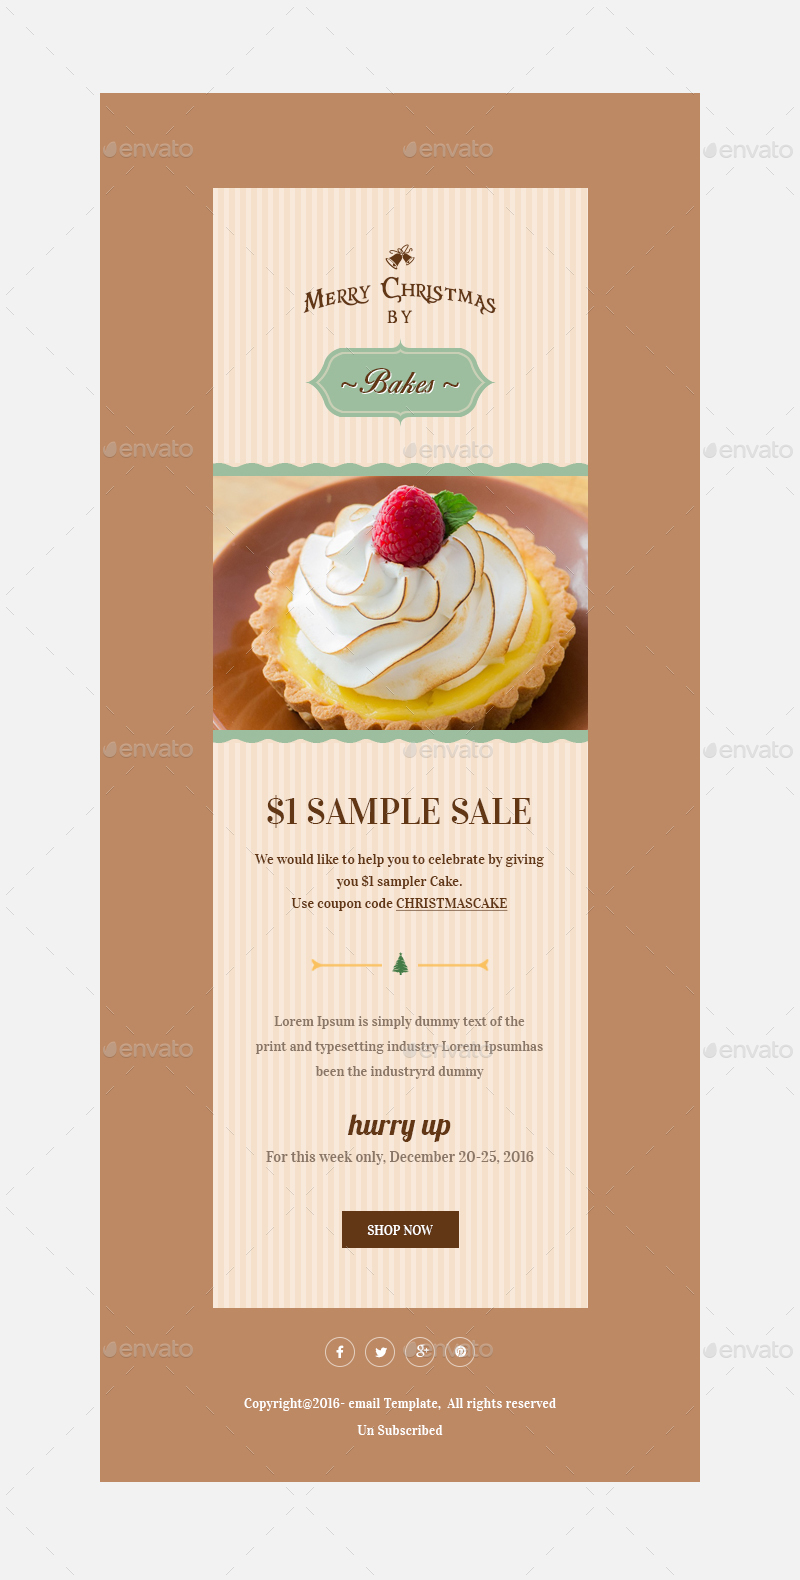 Christmas OffersGreetings Email Template PSD By